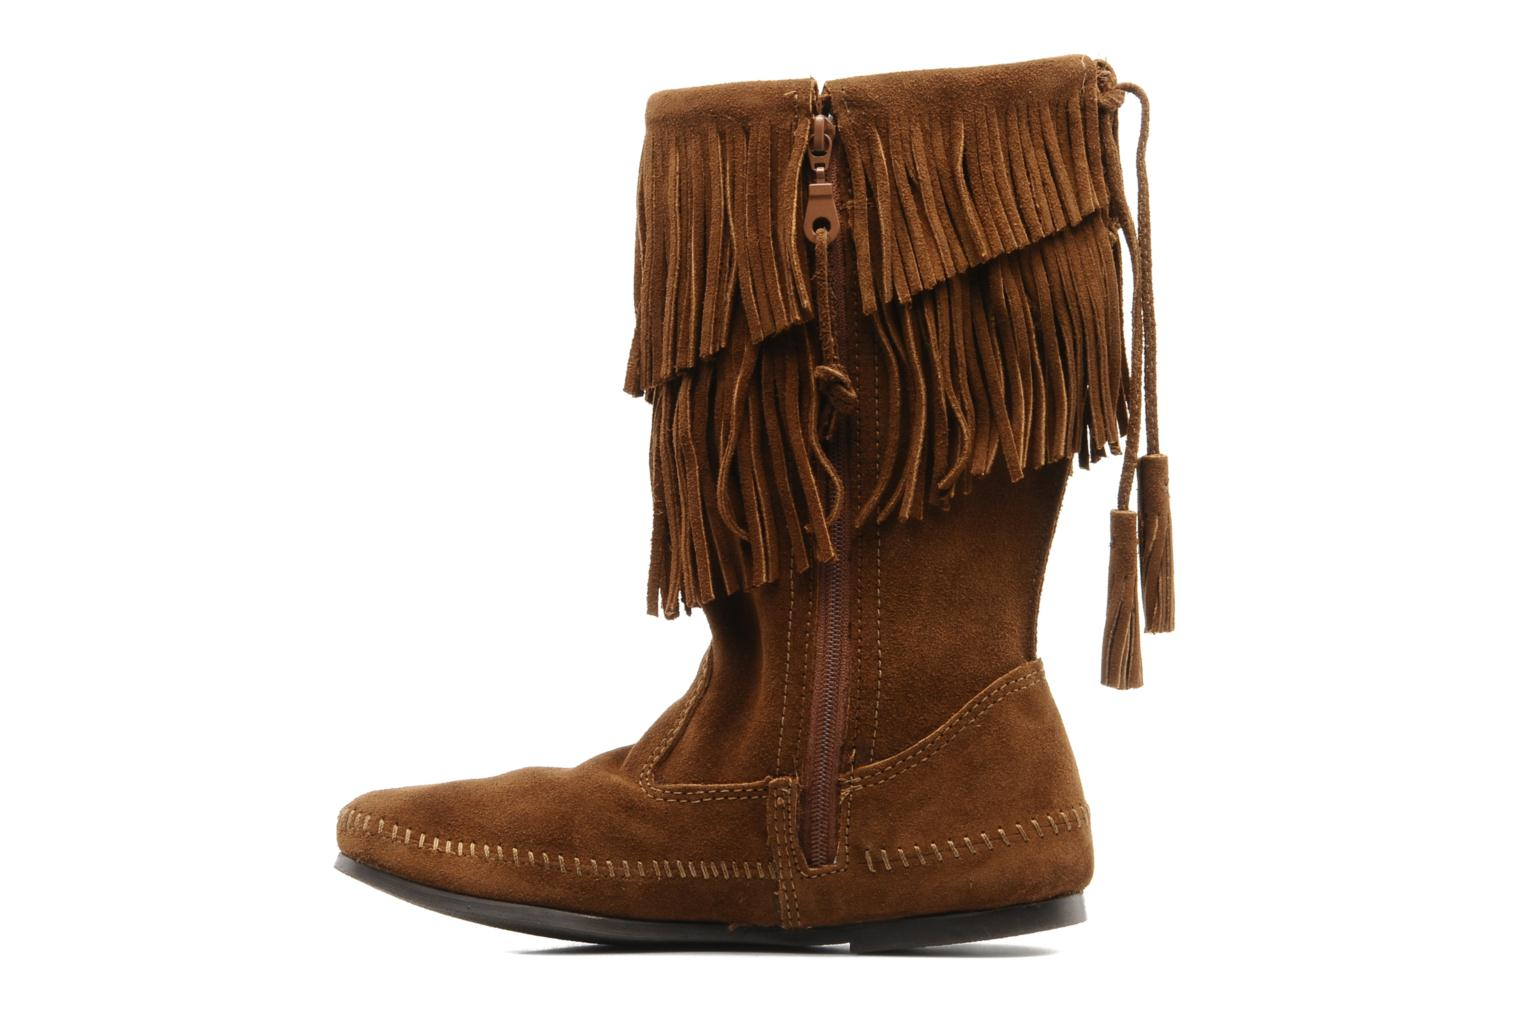 Bottines et boots Minnetonka CALF HI 2LAYER FRINGE Marron vue face